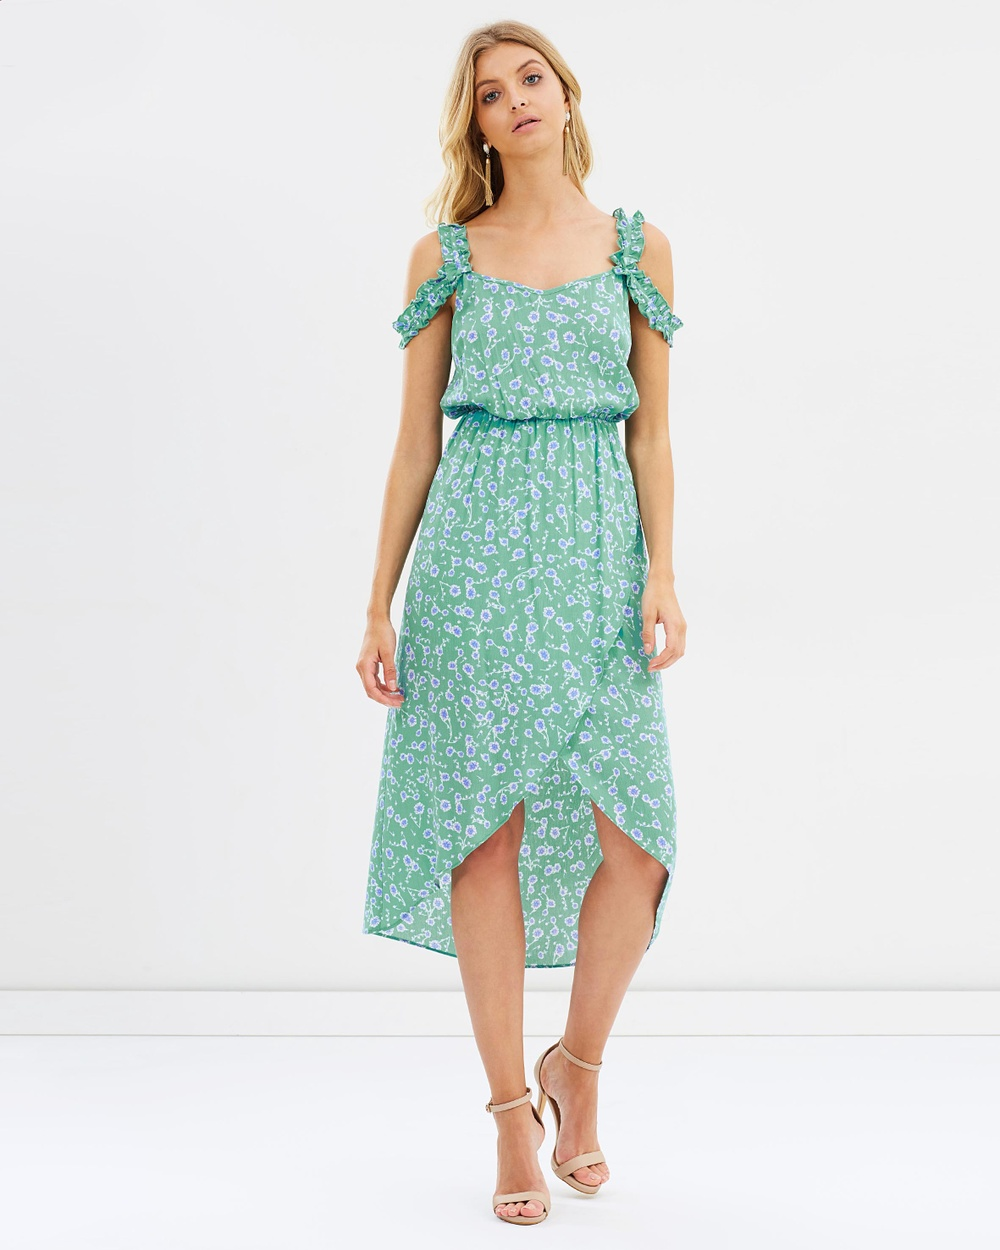 Atmos & Here ICONIC EXCLUSIVE Belle Wrap Dress Printed Dresses Green Floral ICONIC EXCLUSIVE Belle Wrap Dress